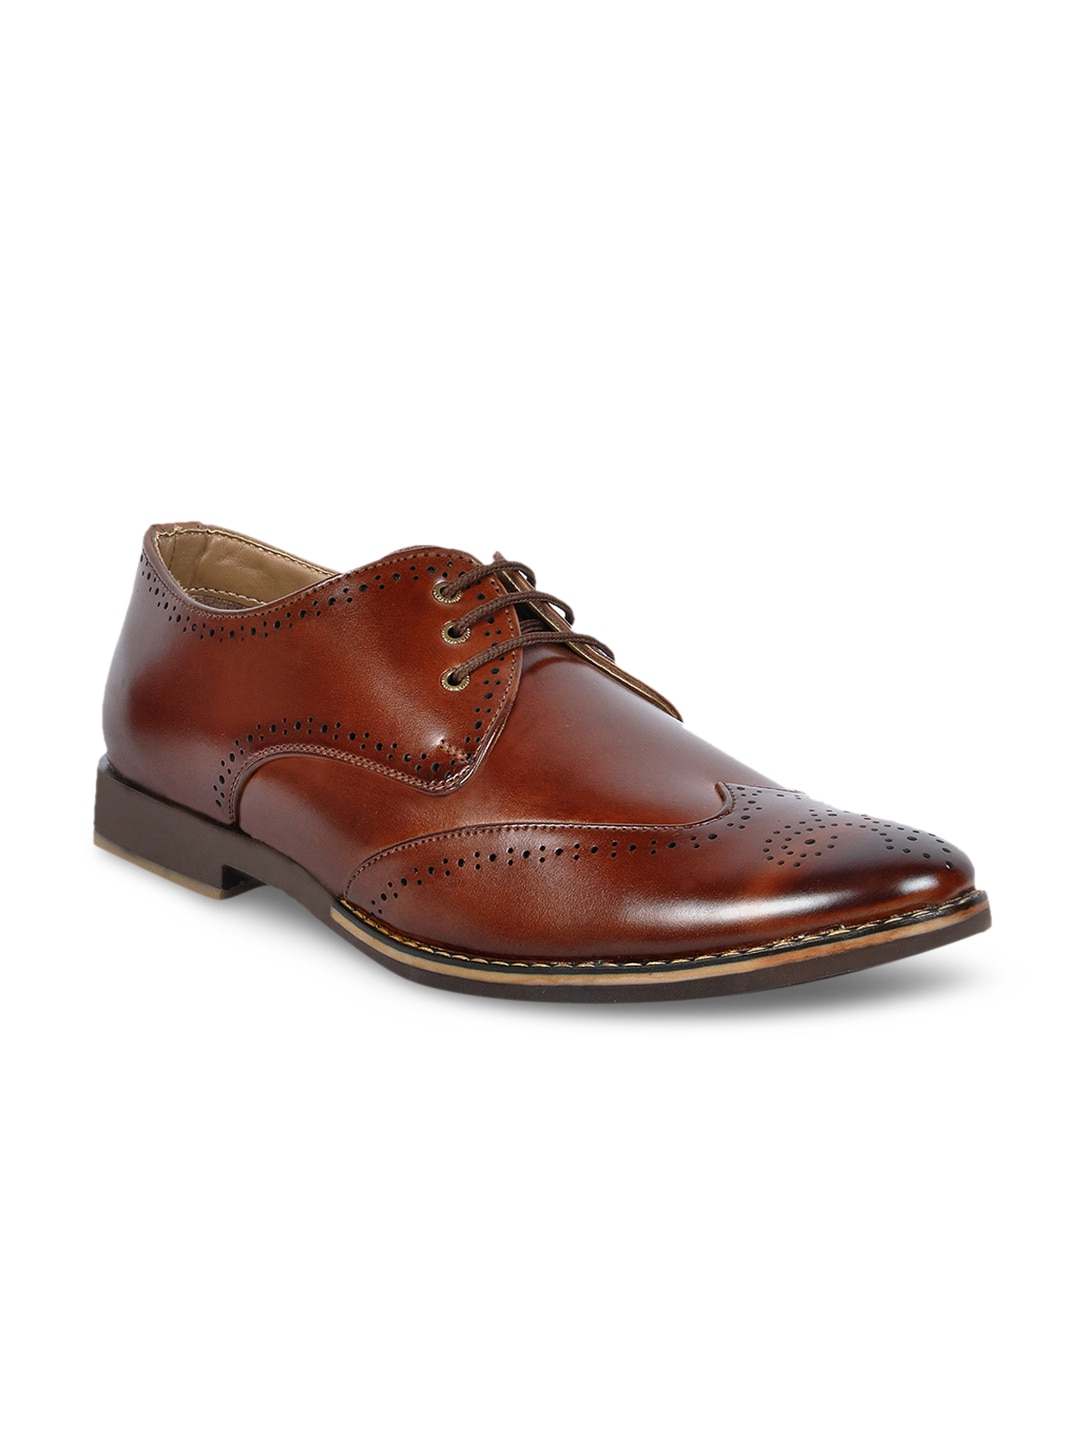 30 best formal shoes for and in branded styles